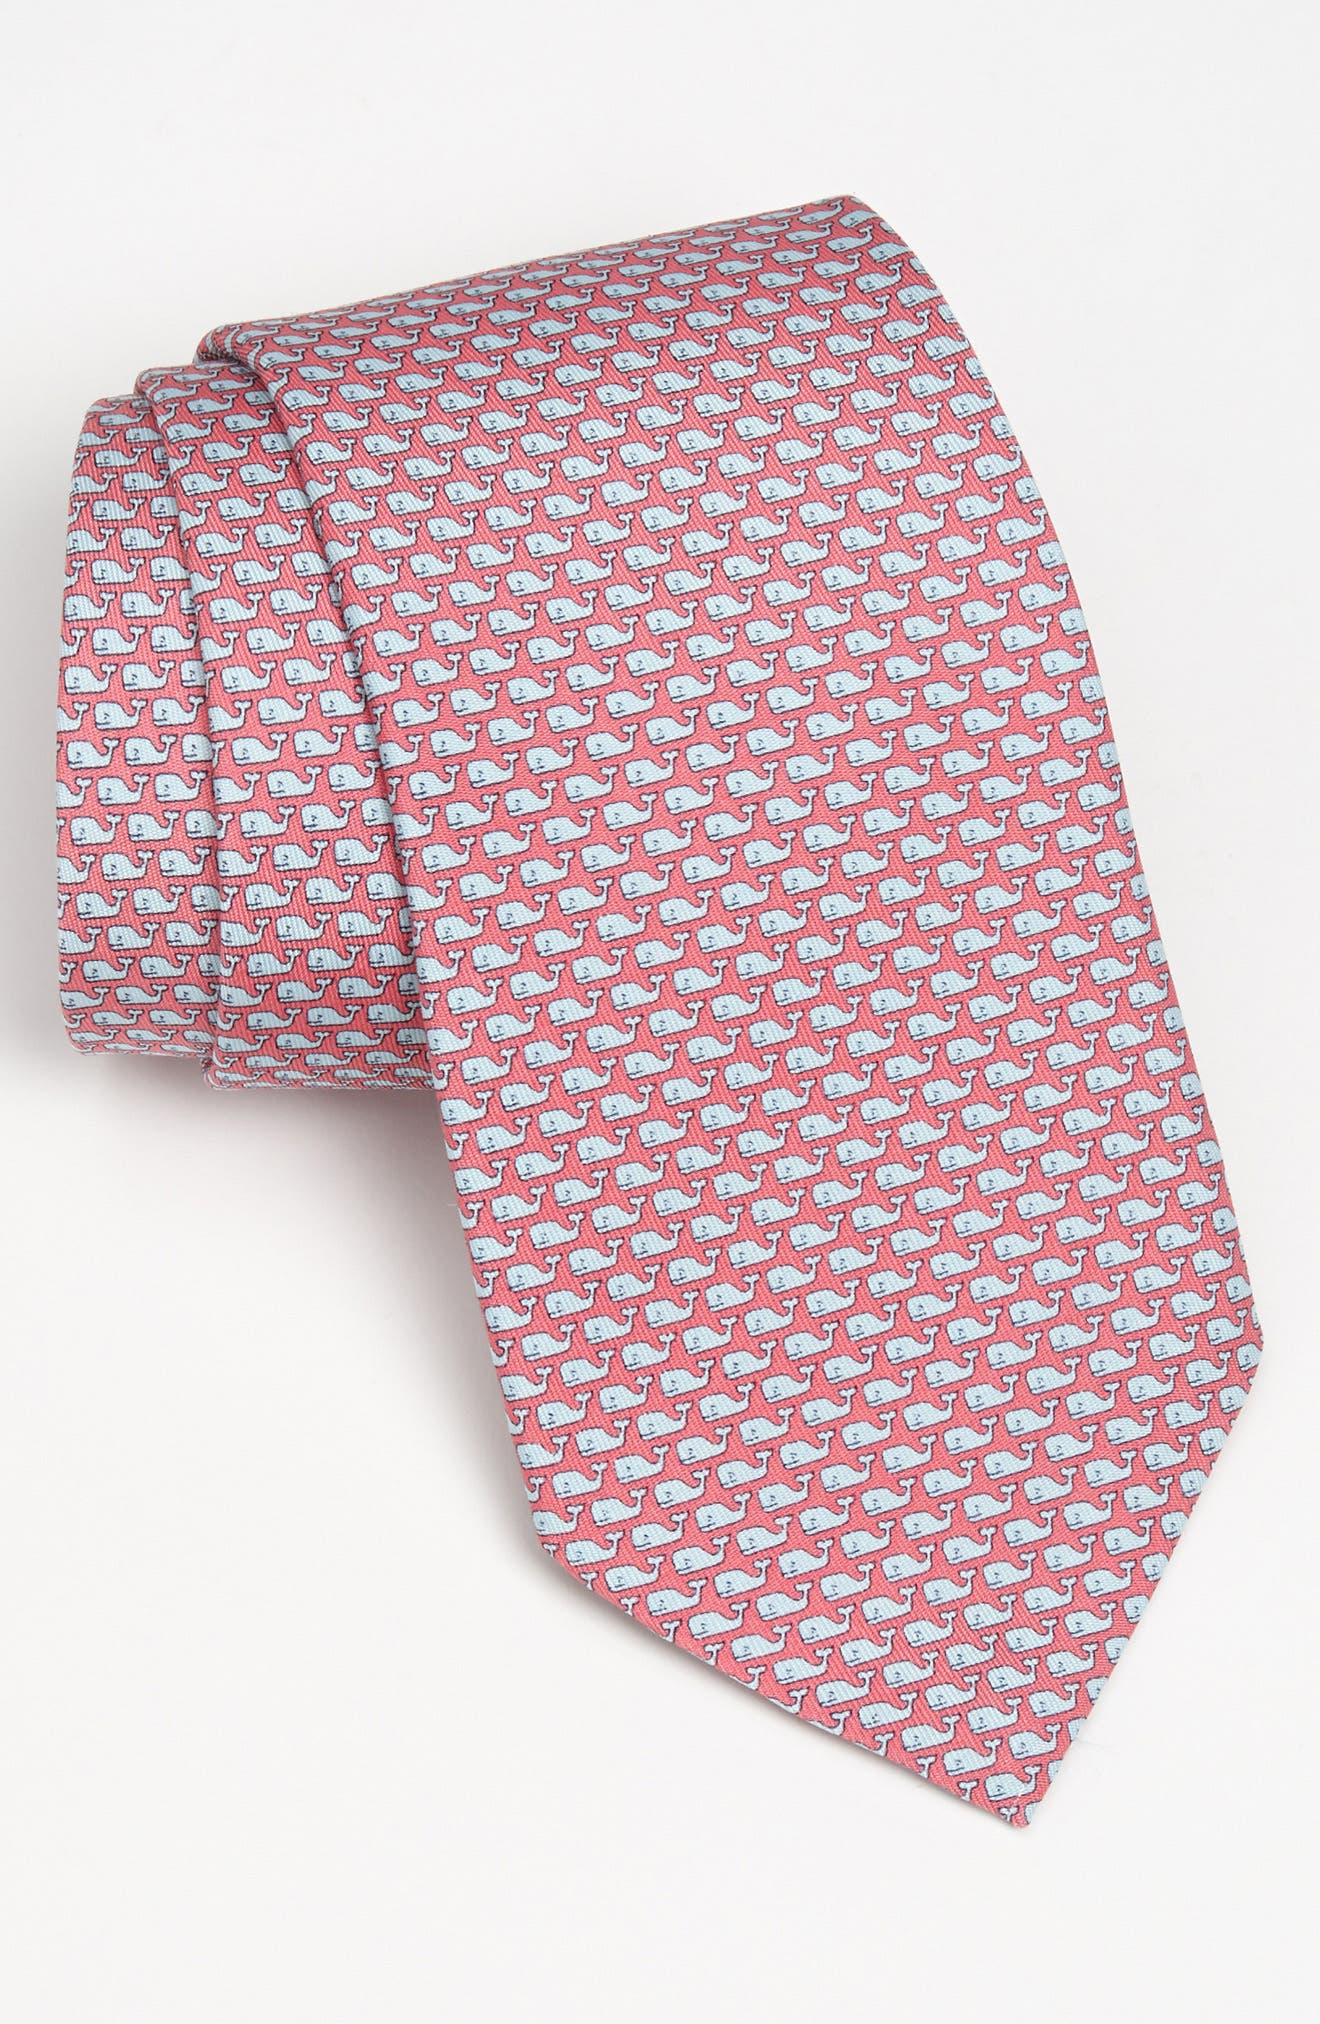 Whale Silk Tie,                             Main thumbnail 1, color,                             670